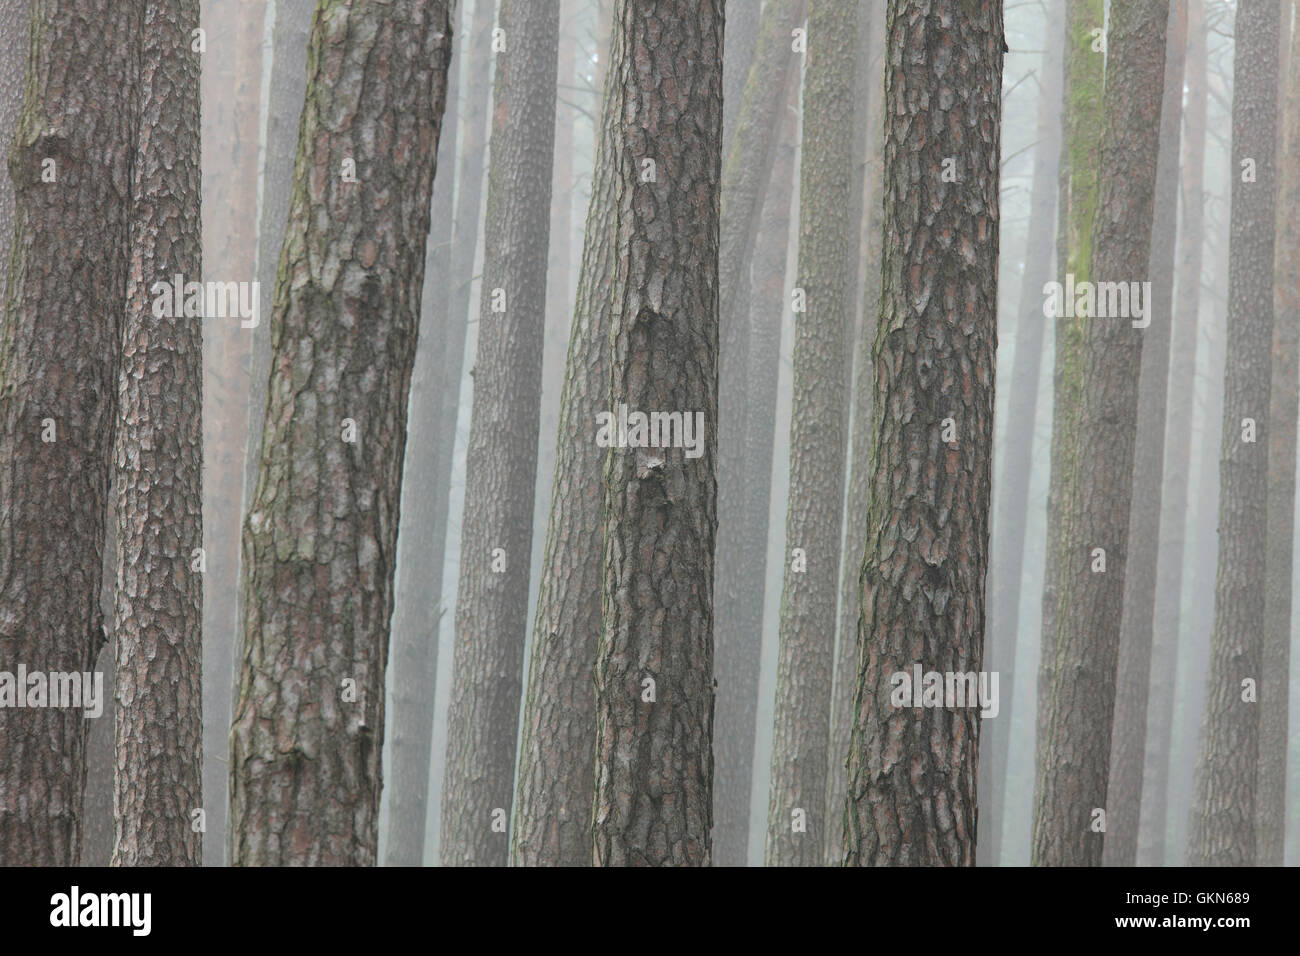 Scots Pine (Pinus sylvestris) tree trunks in coniferous forest in the mist - Stock Image